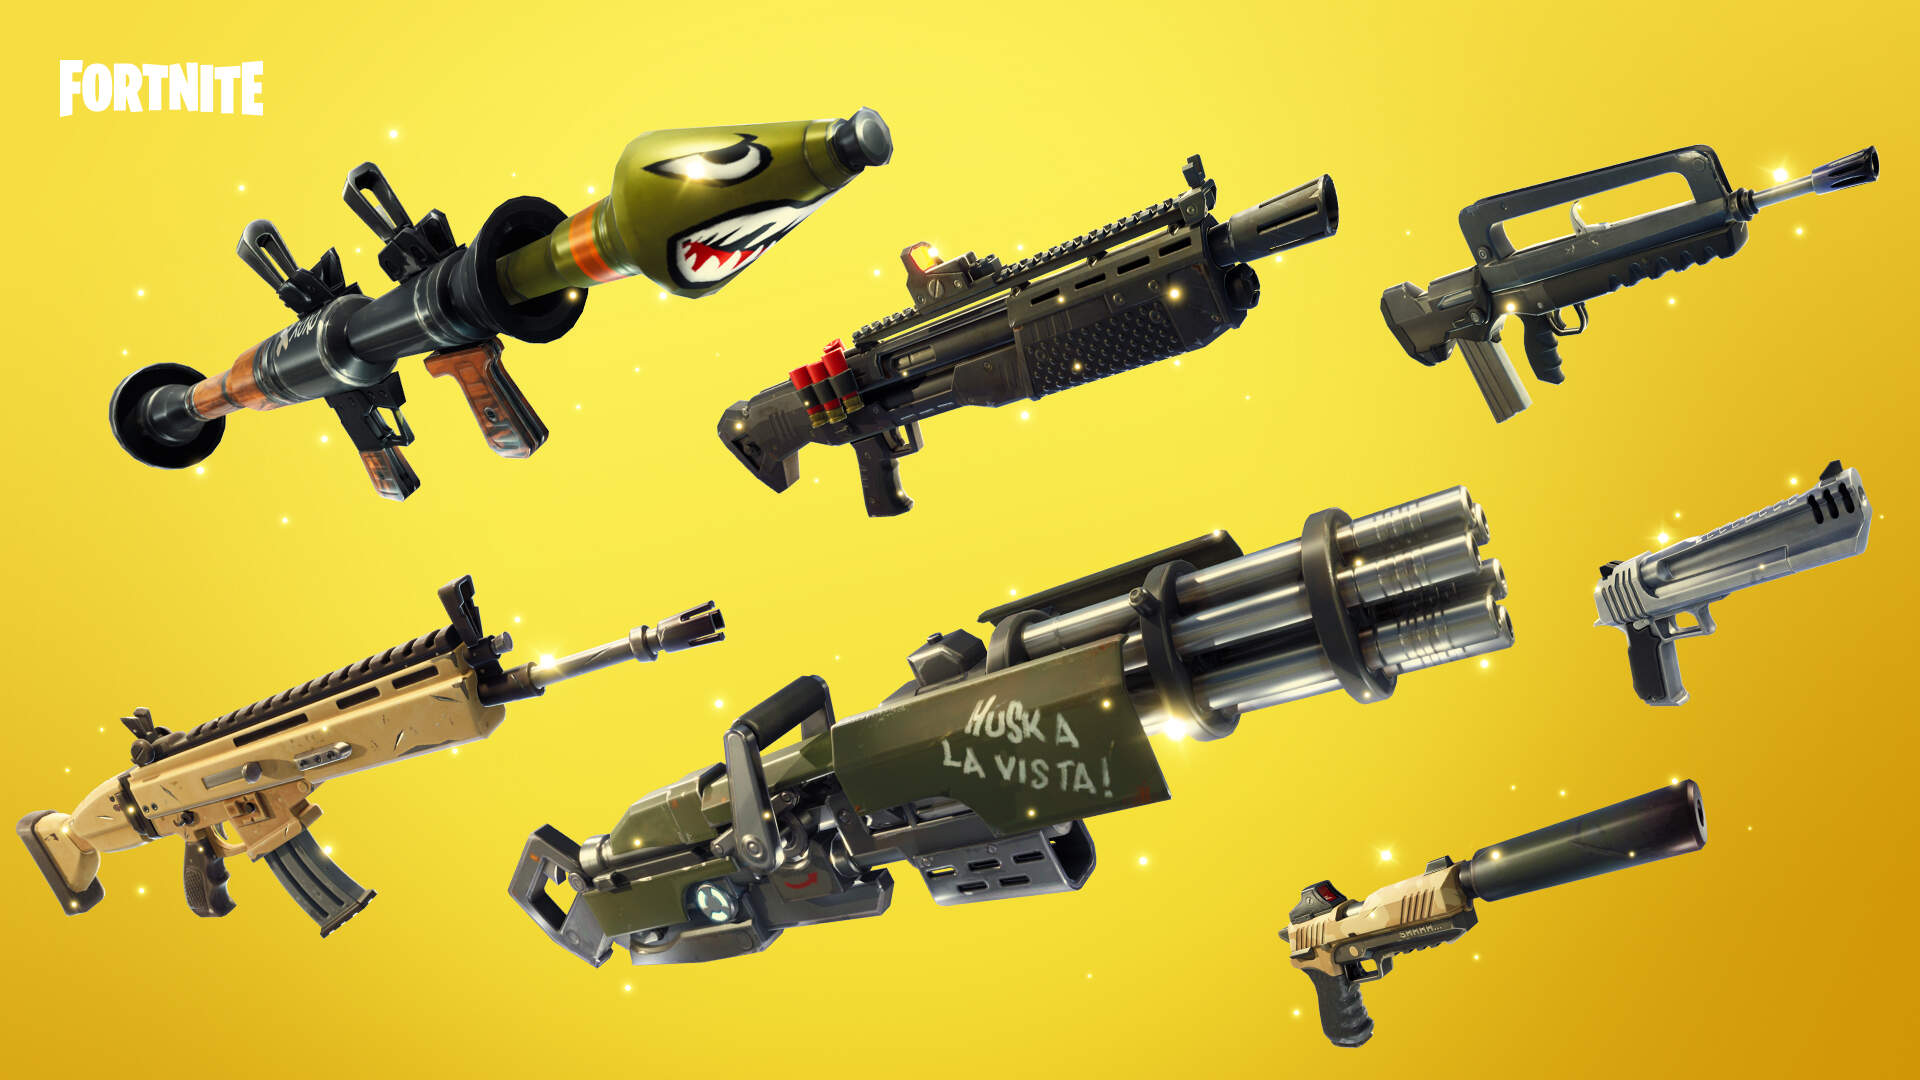 New Heavy Sniper Coming Soon to Fortnite Battle Royale